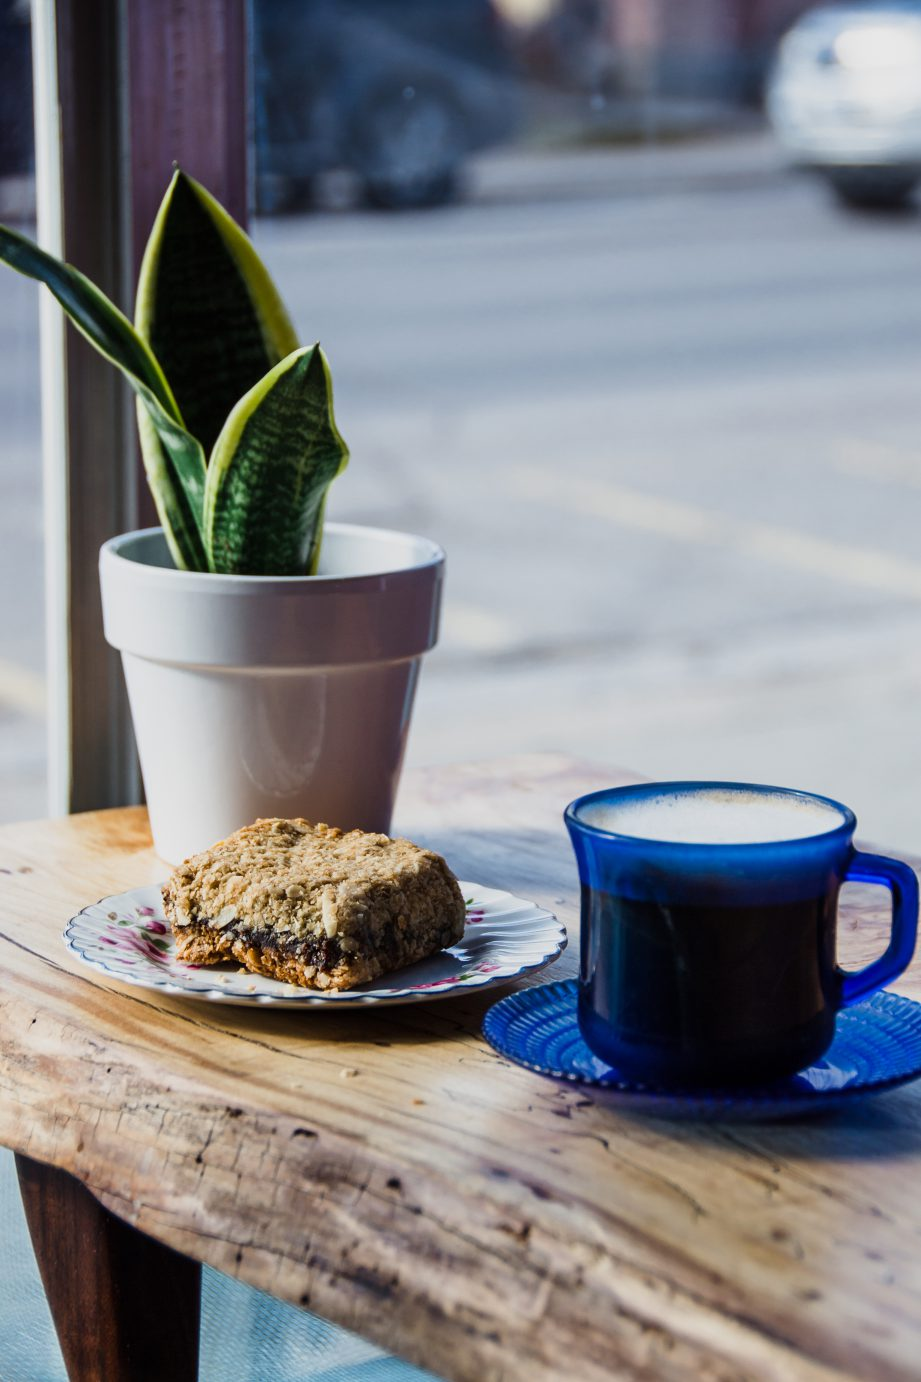 A coffee cup and a small plate with dessert on a wooden table.